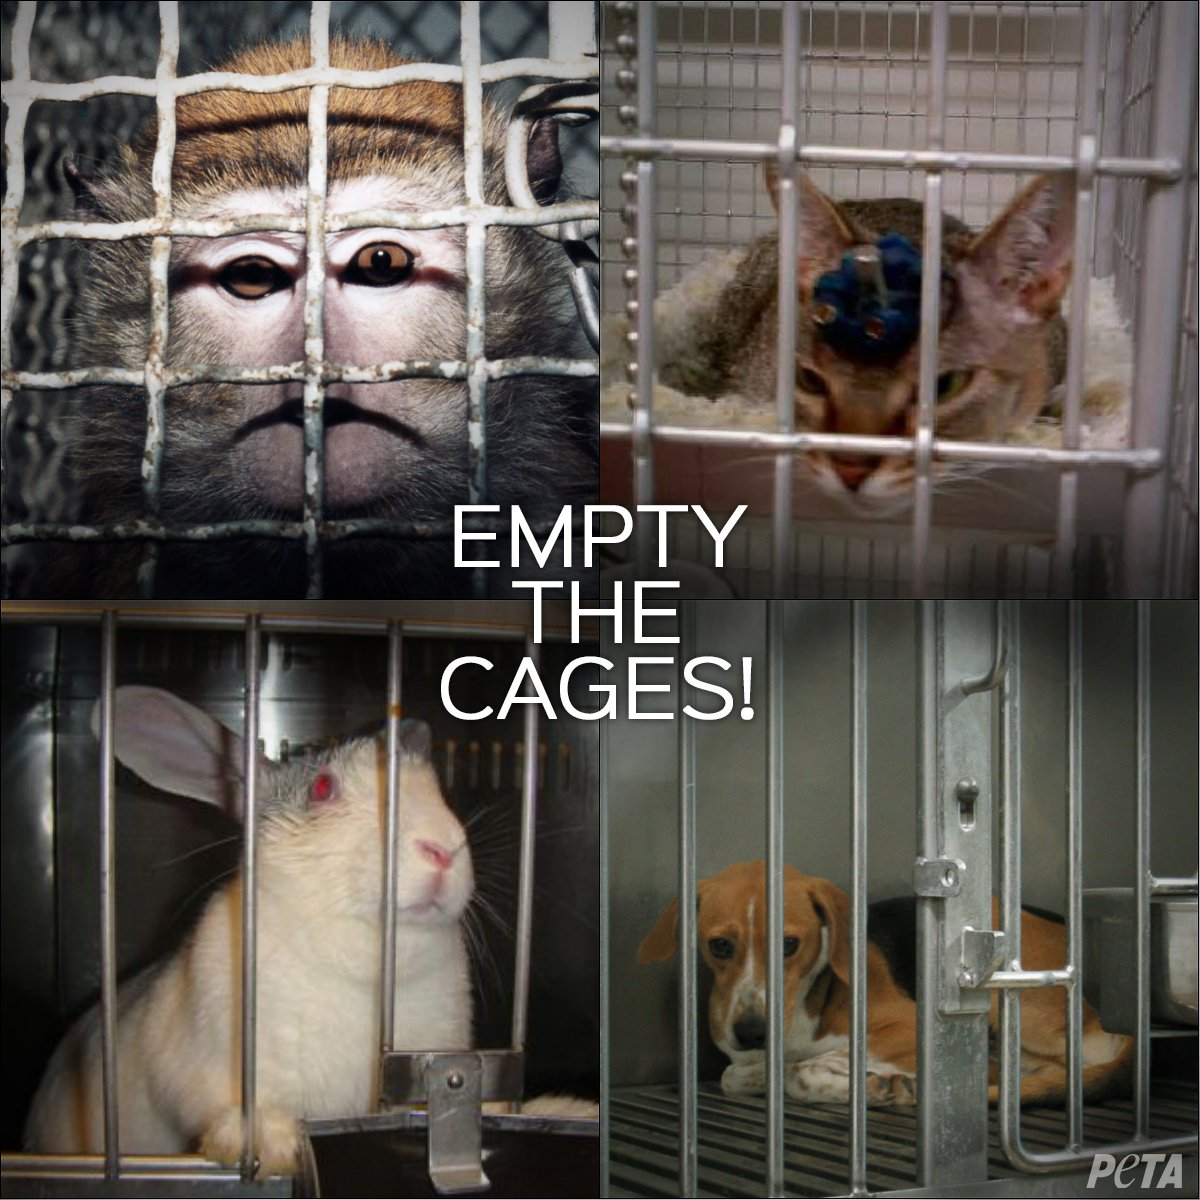 All the cages are empty. #5WordWishForTheFuture <br>http://pic.twitter.com/eXOZWxvE3F